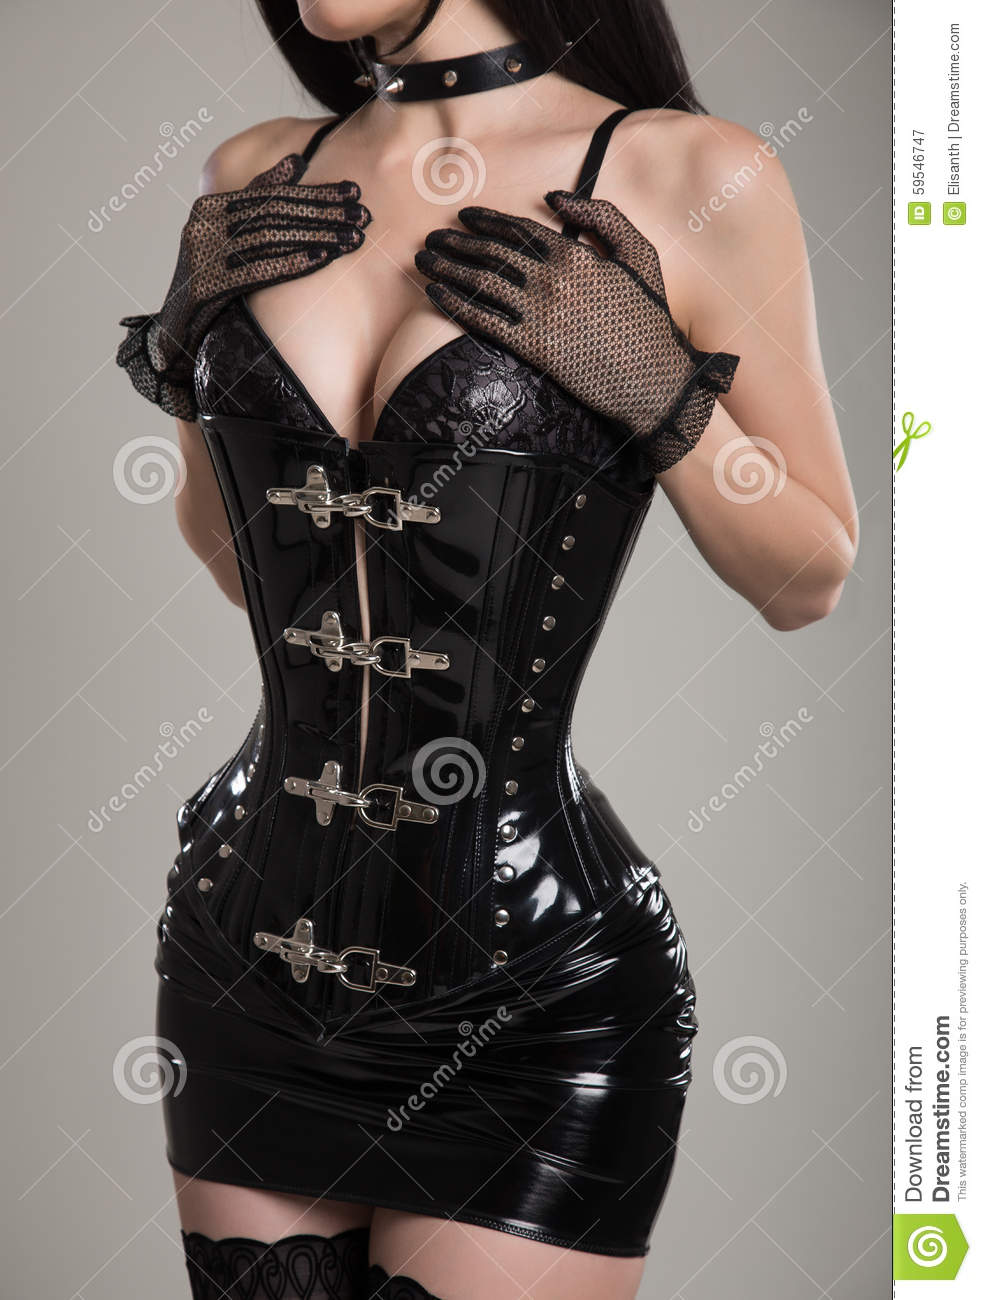 Dominatrix Woman In Black Fetish Corset Stock Image ...